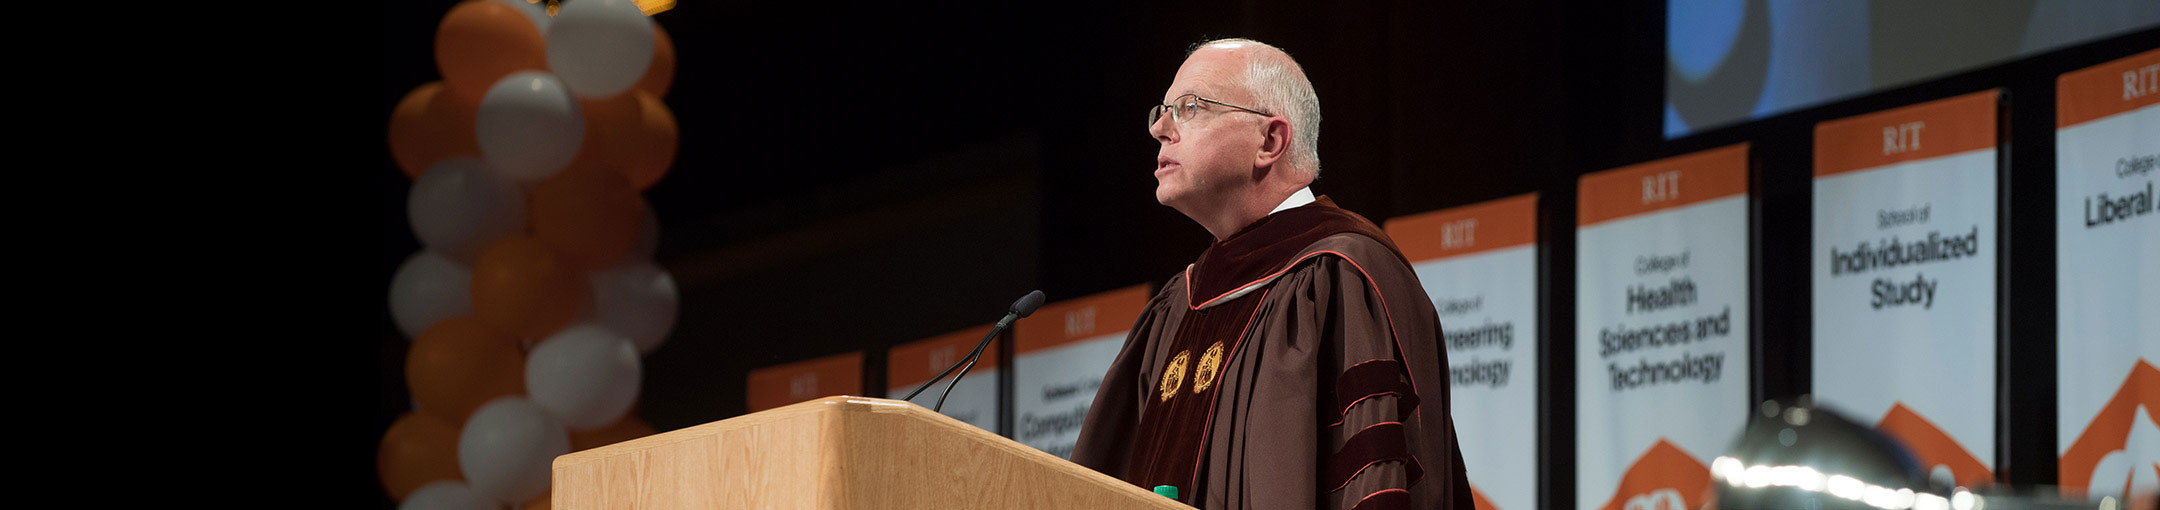 President Munson addressing a group at a graduation ceremony